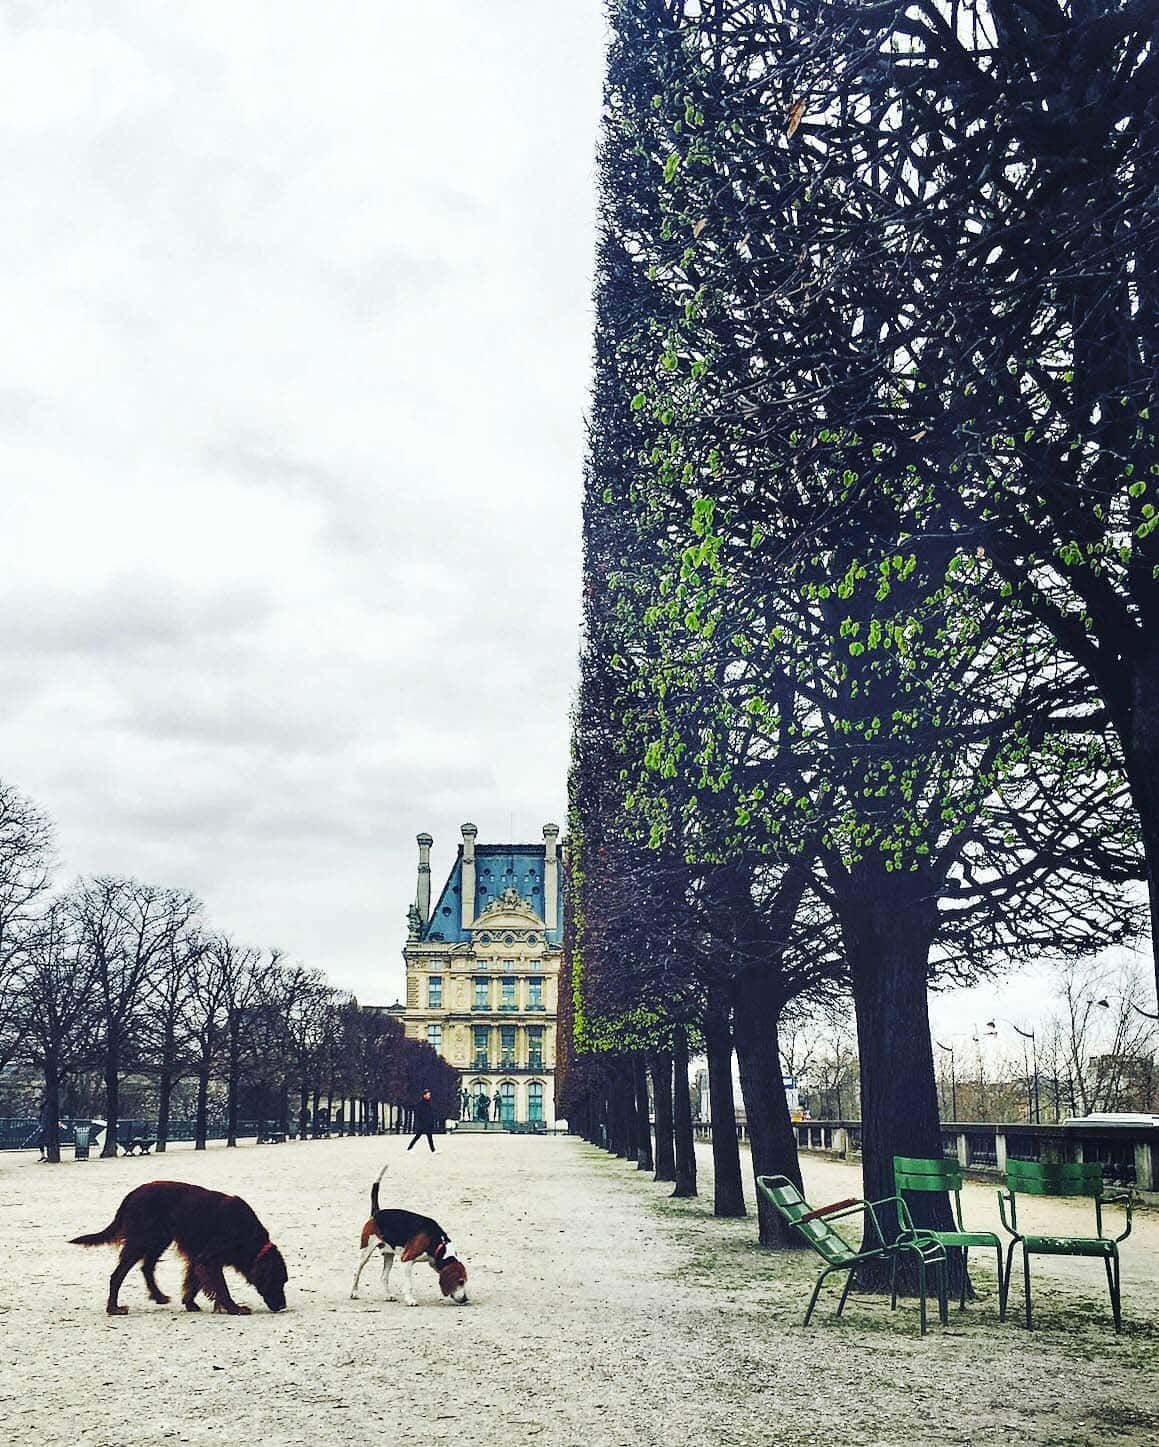 jardin des tuileries -- dogs in the garden